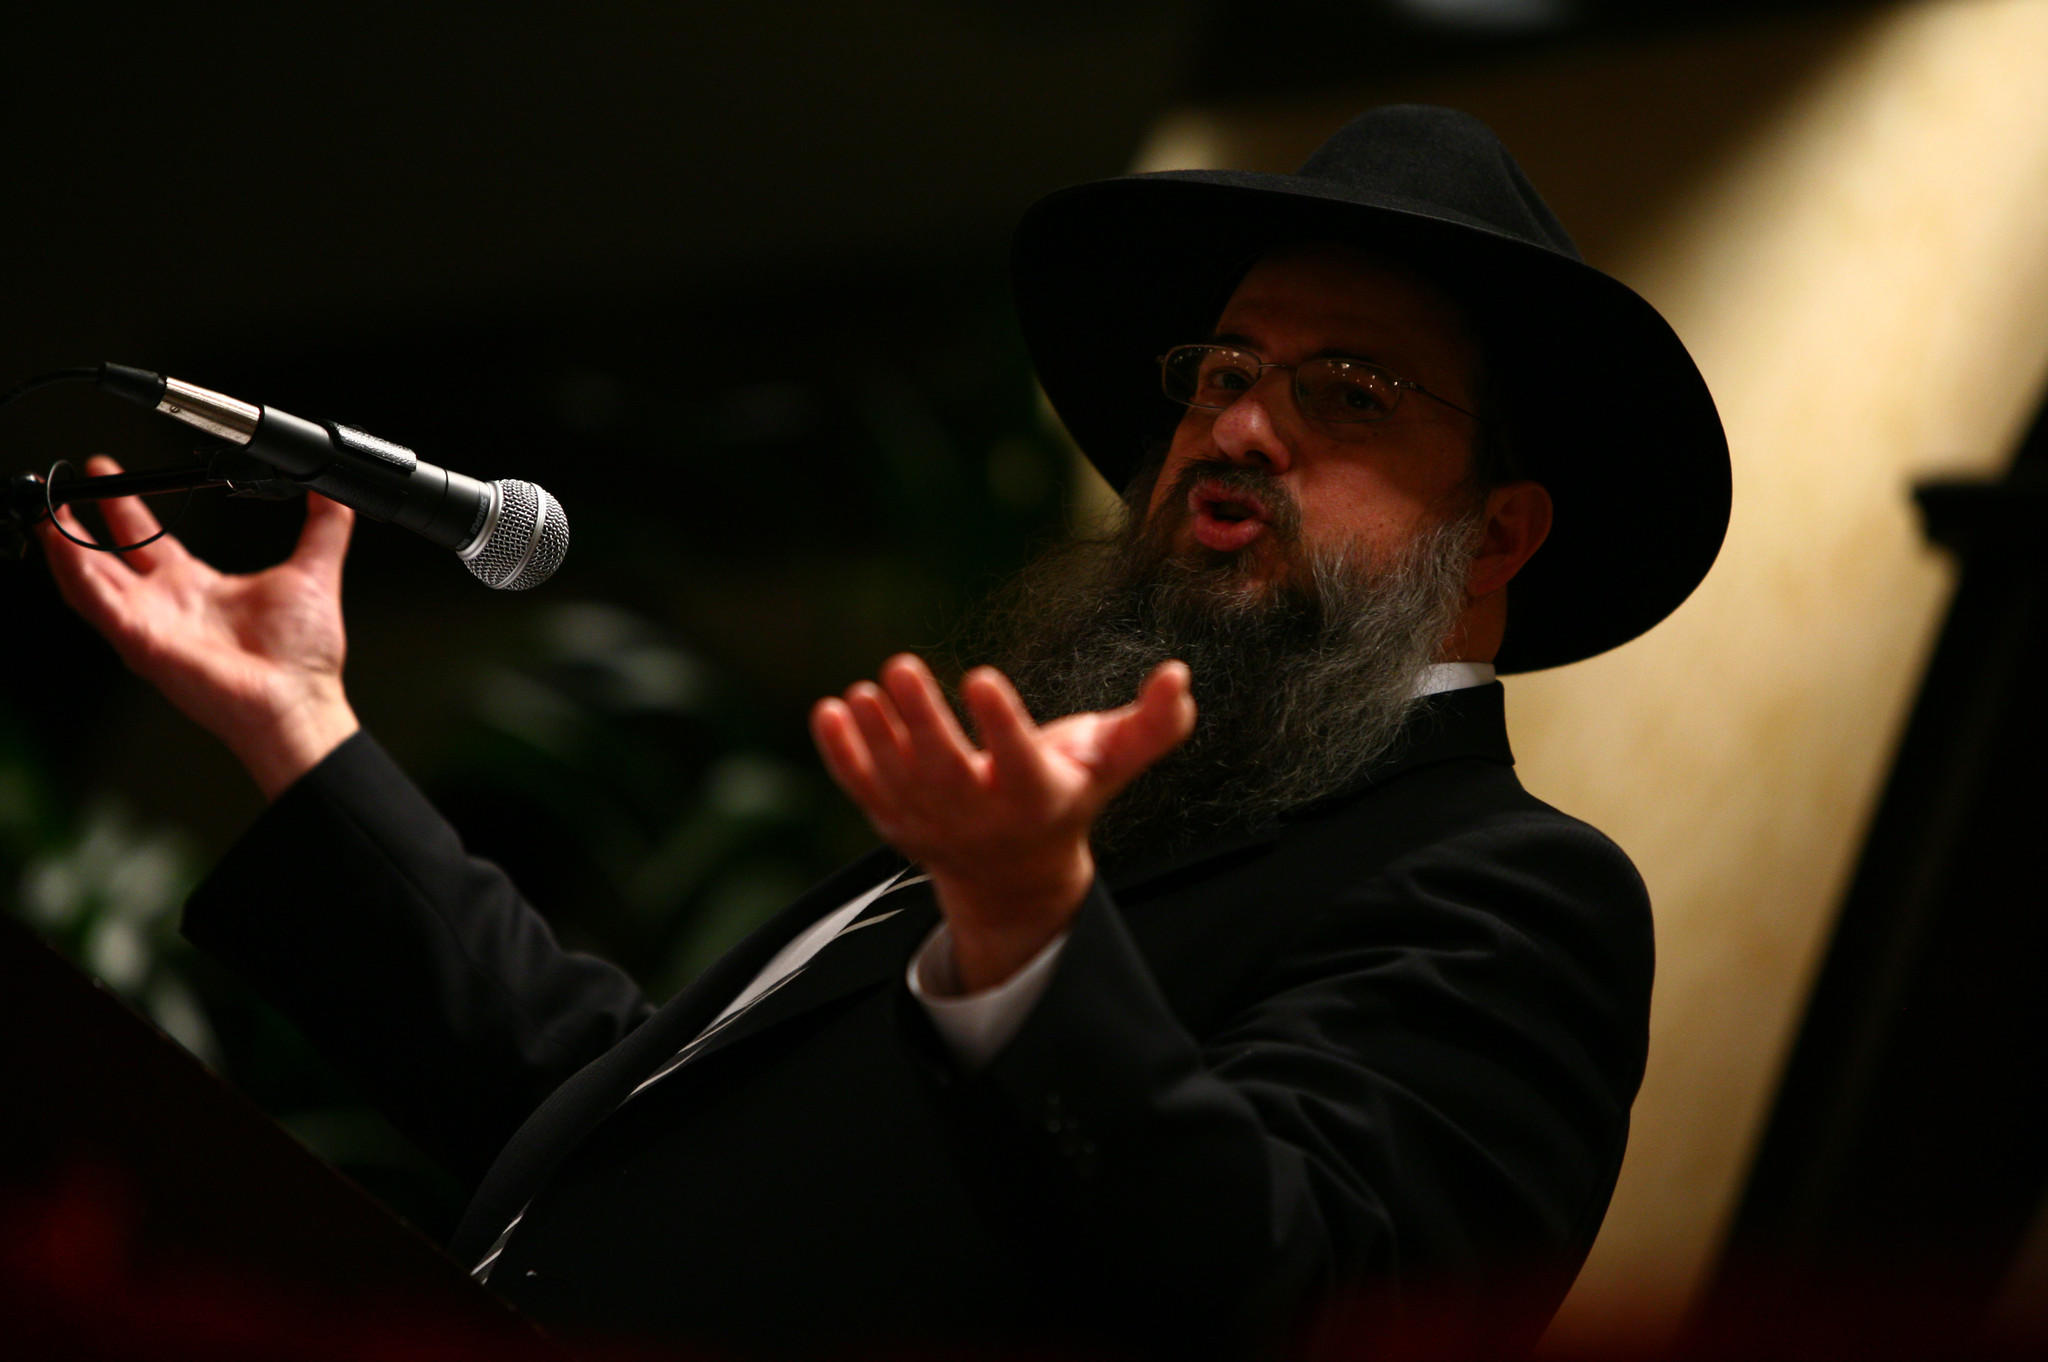 Rabbi Daniel Moscowitz, regional director of Lubavitch Chbad of Illinois, speaks during a memorial service for victims of Mumbai violence by the Chicago Jewish Community at the Holiday Inn North Shore in Skokie on Dece. 3, 2008.